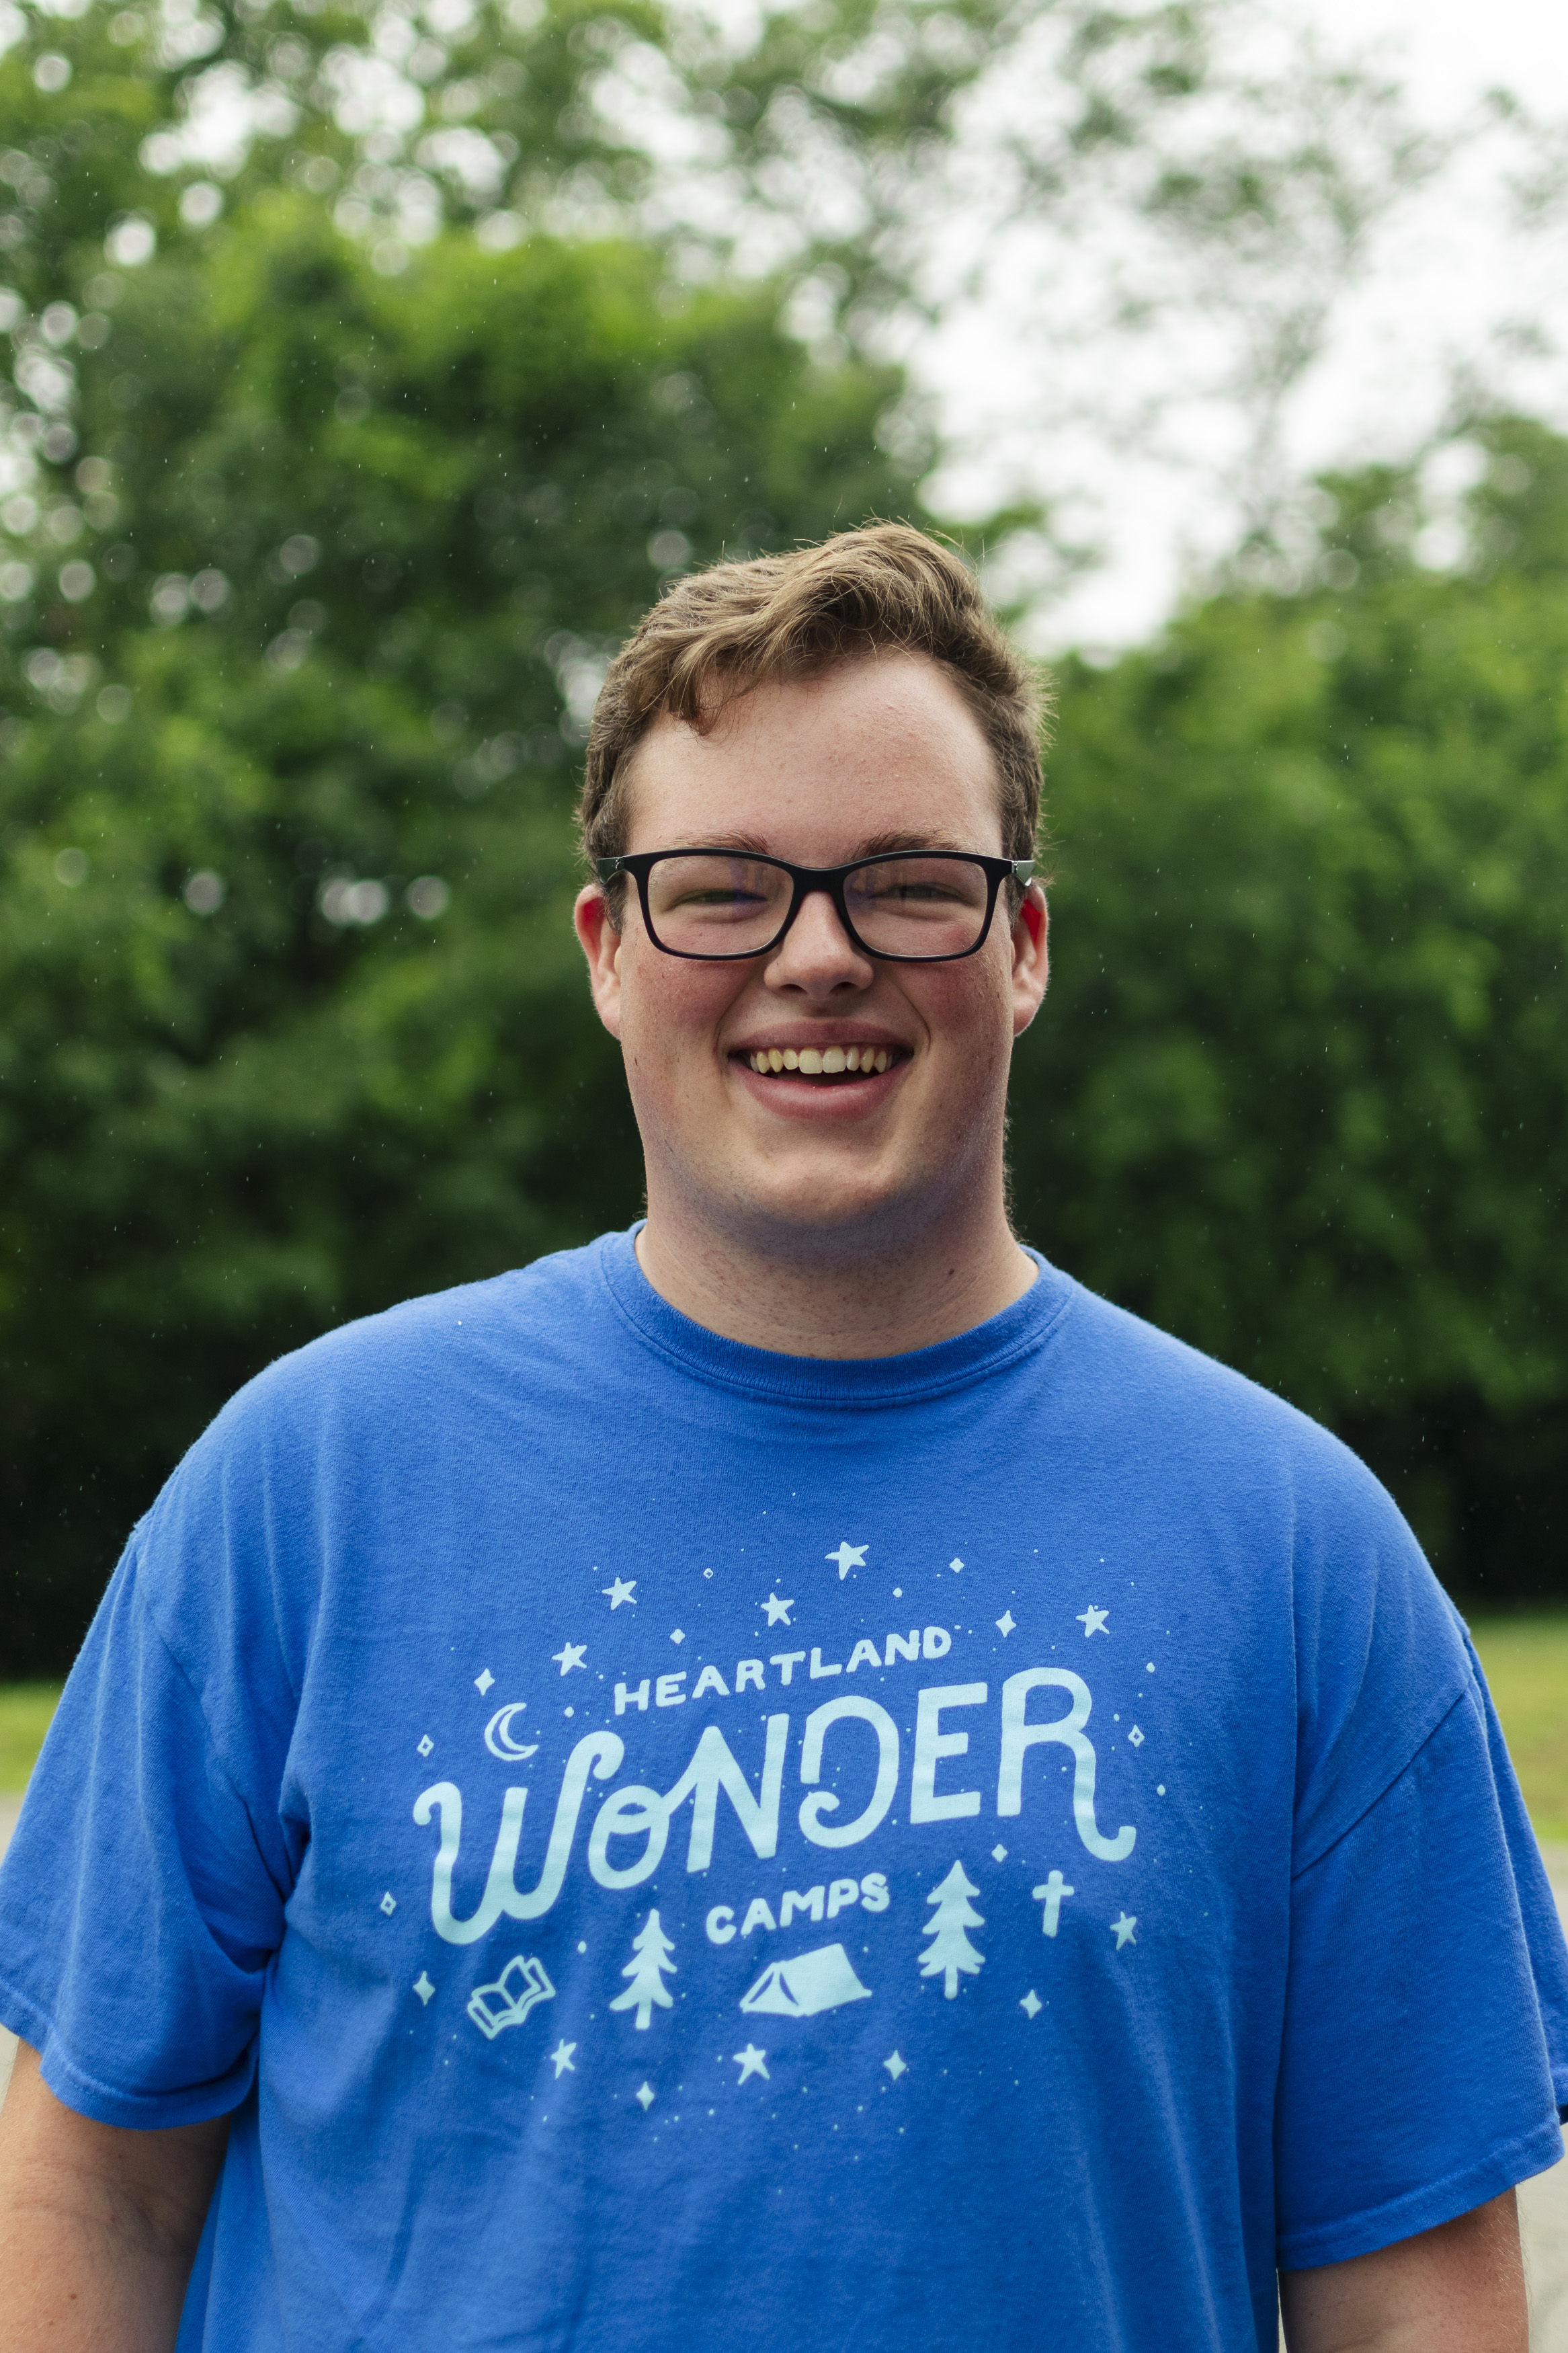 Nic Craig is a student at Huntington University. His favorite scripture is Romans 12.